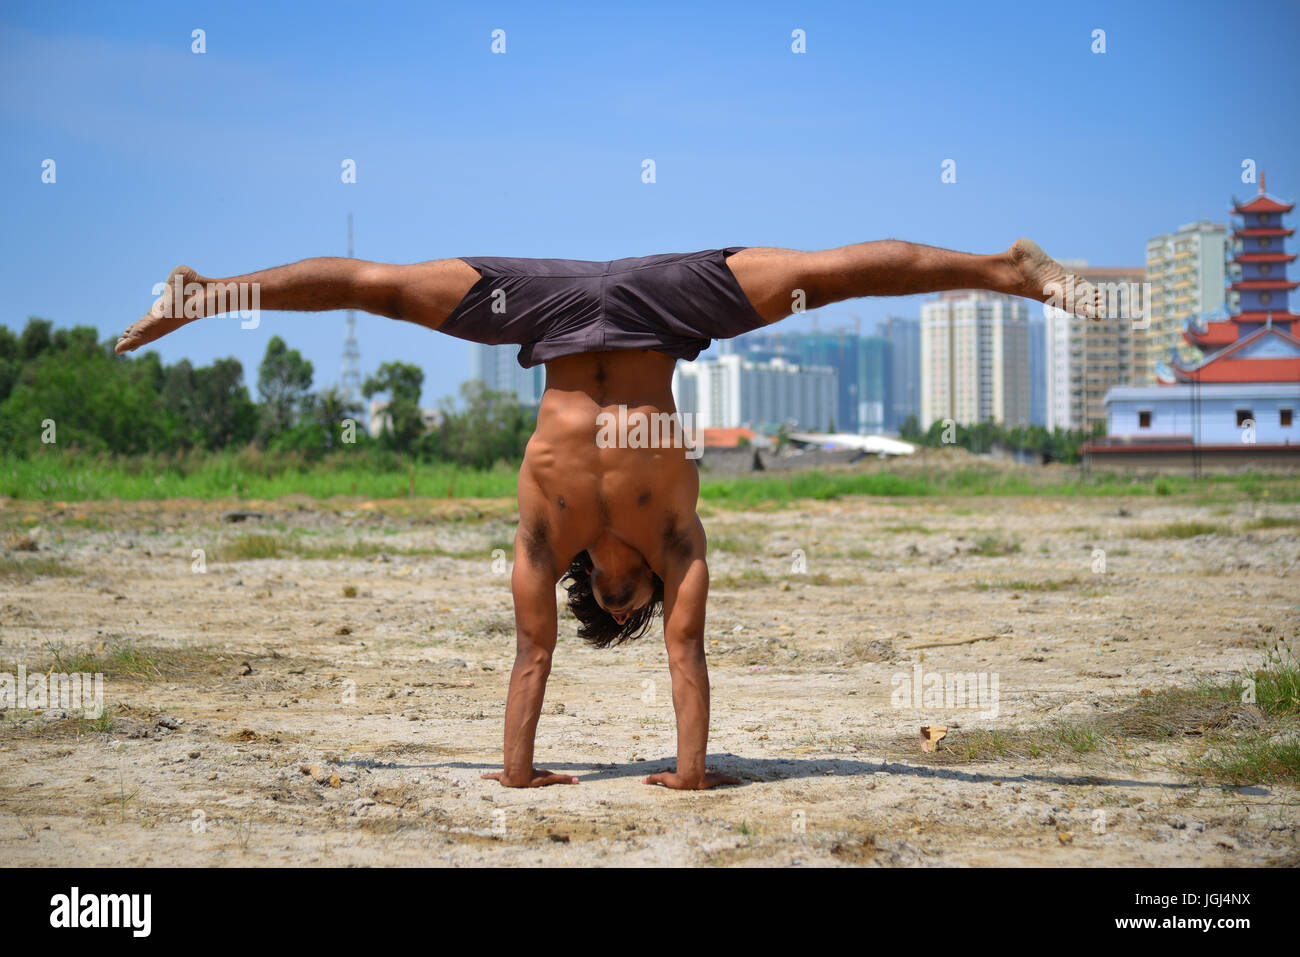 An Indian Man Doing Yoga Poses At Summer With Cityscape Background Stock Photo Alamy